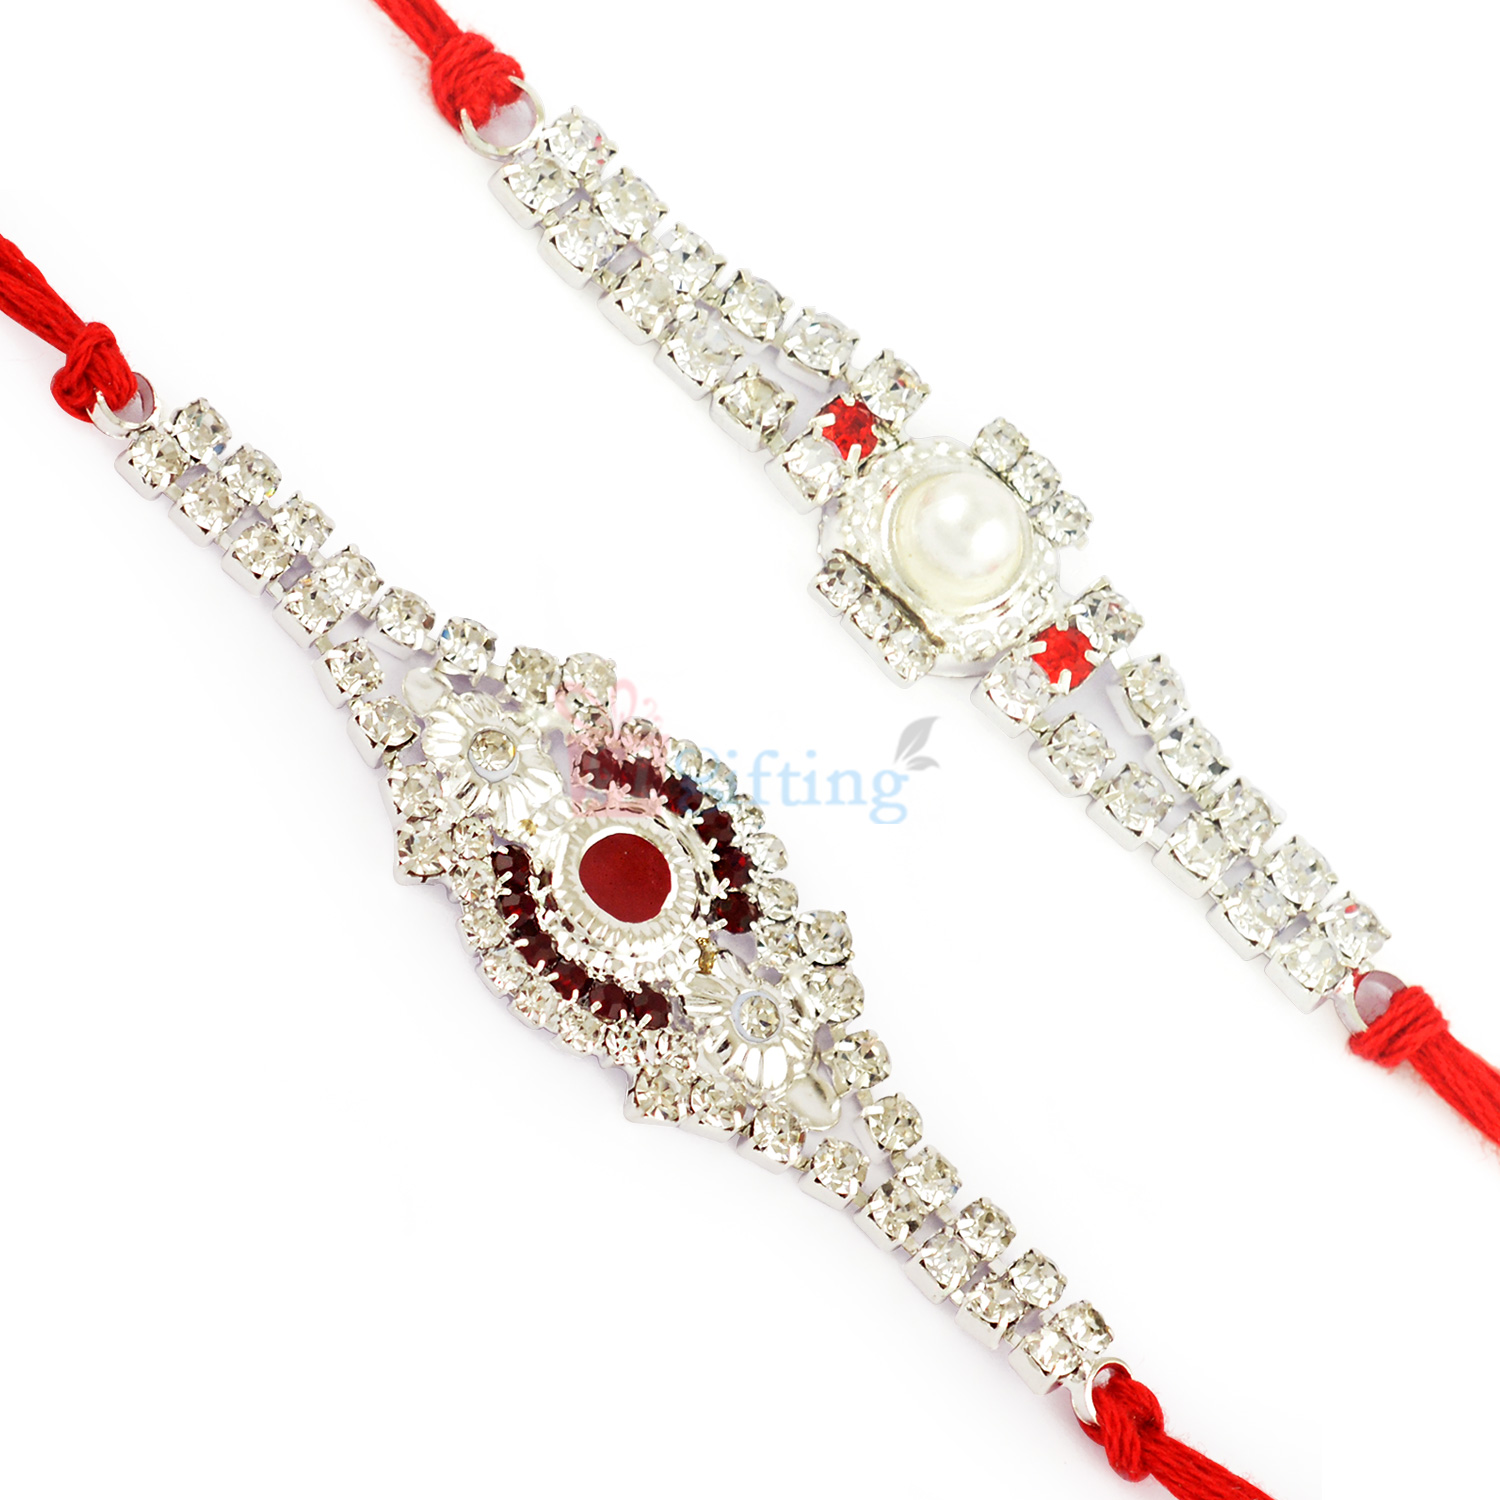 Exclusive Diamond Rakhi Collection of 2 Rakhis